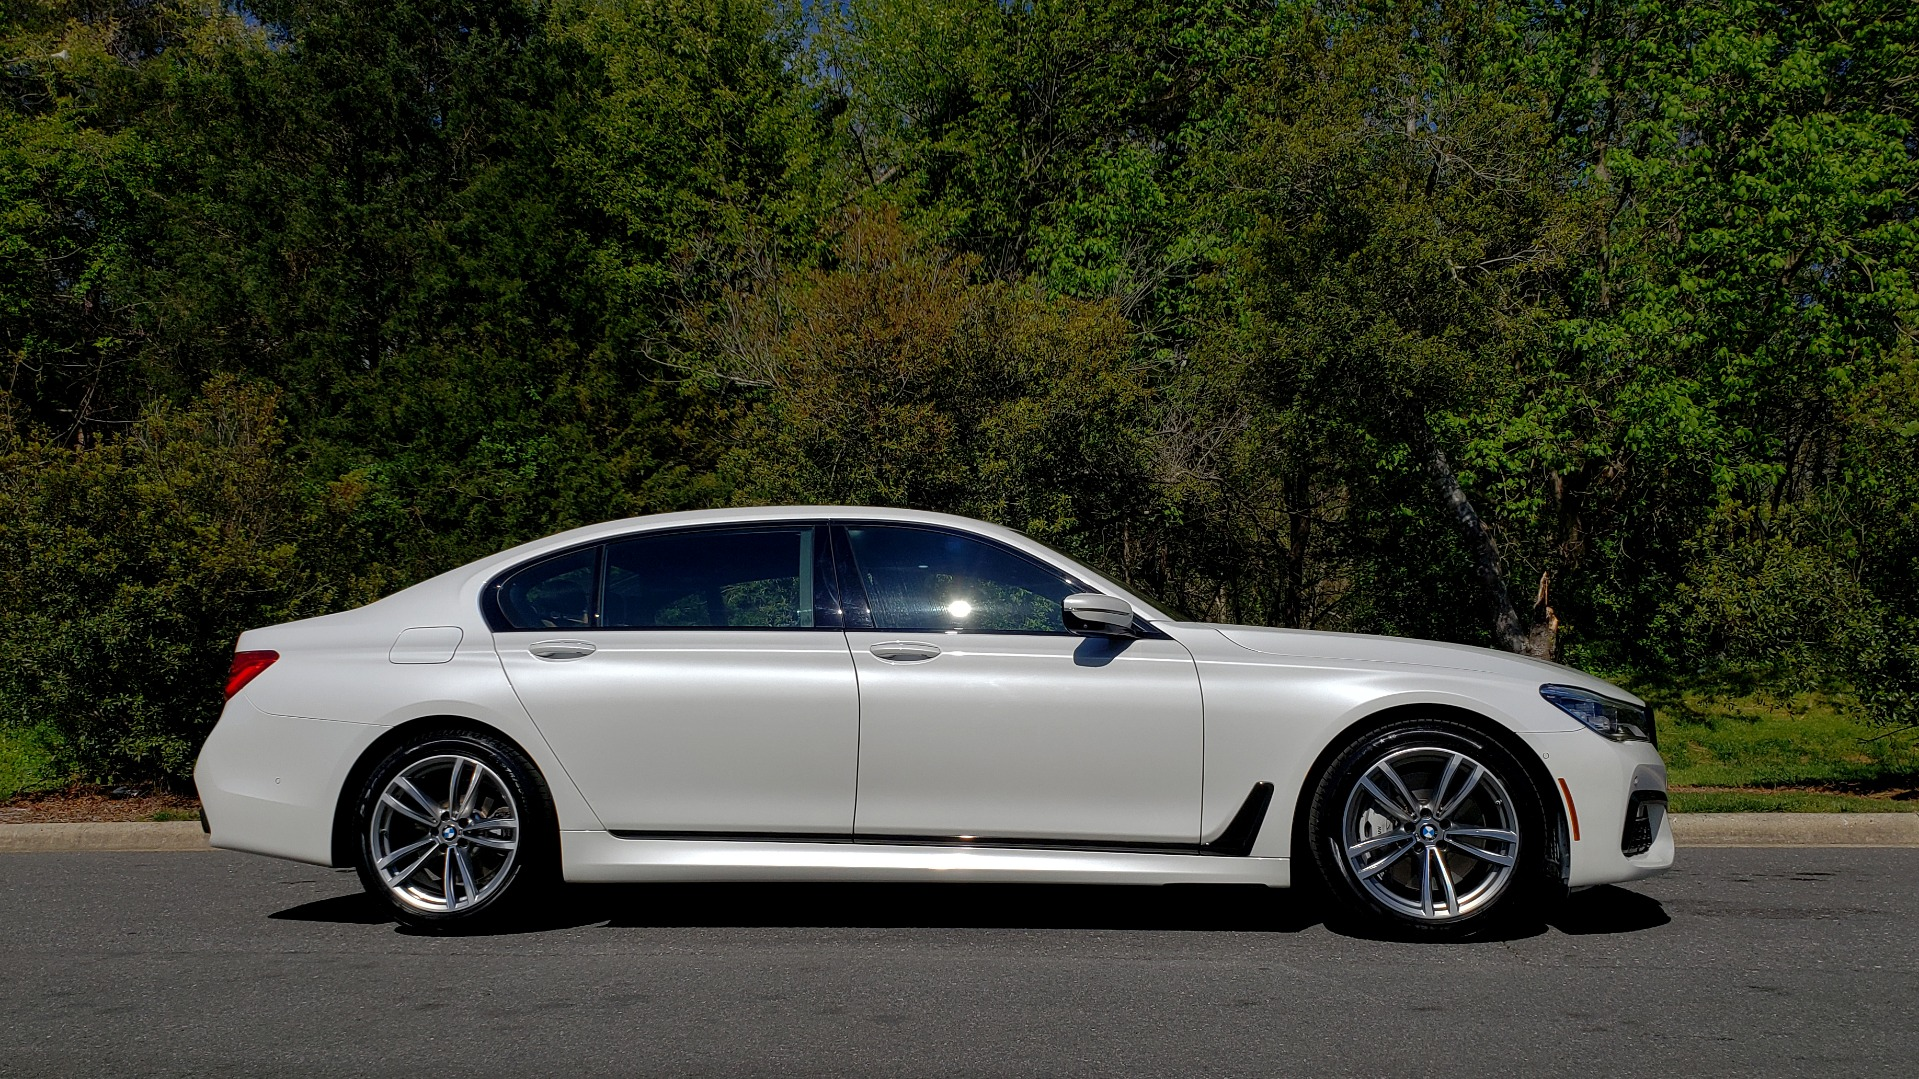 Used 2017 BMW 7 SERIES 750I XDRIVE / M-SPORT / EXEC PKG / DRVR ASST PLUS II / CLD WTHR for sale $48,495 at Formula Imports in Charlotte NC 28227 6